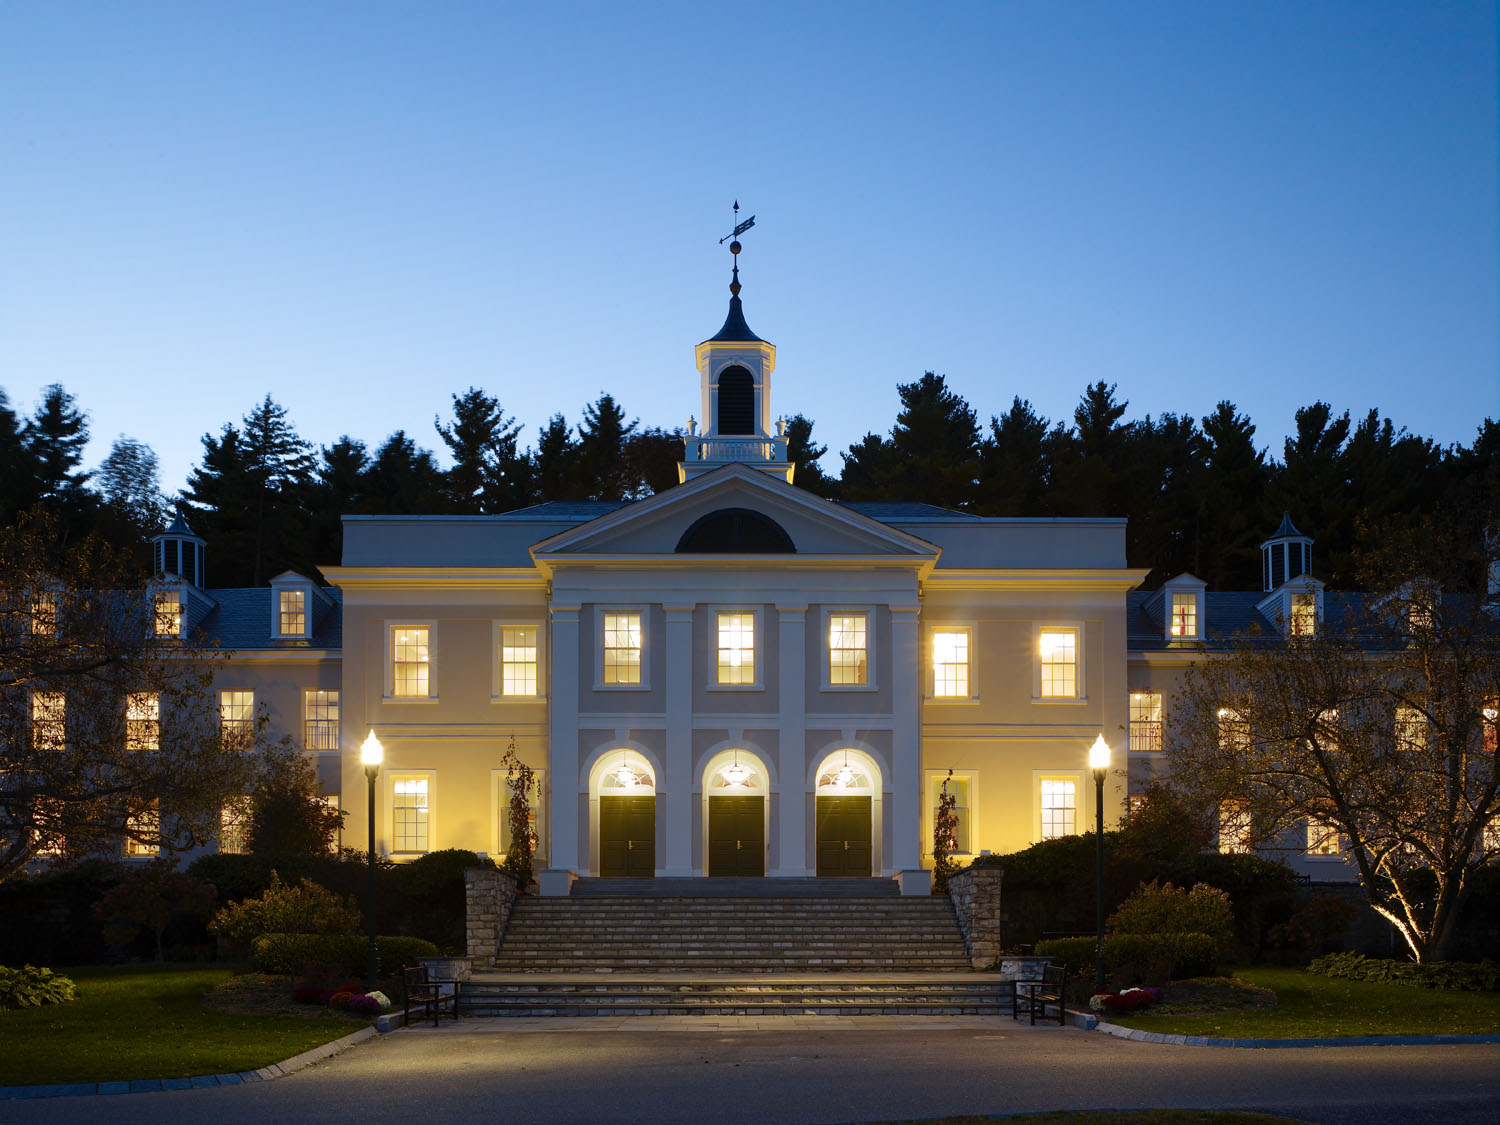 The exterior of the building: a large white building with 10 steps leading up to a front entrance with three arches and a steeple. Dark trees behind and a bright blue sky, taken at night so the building is illuminated.